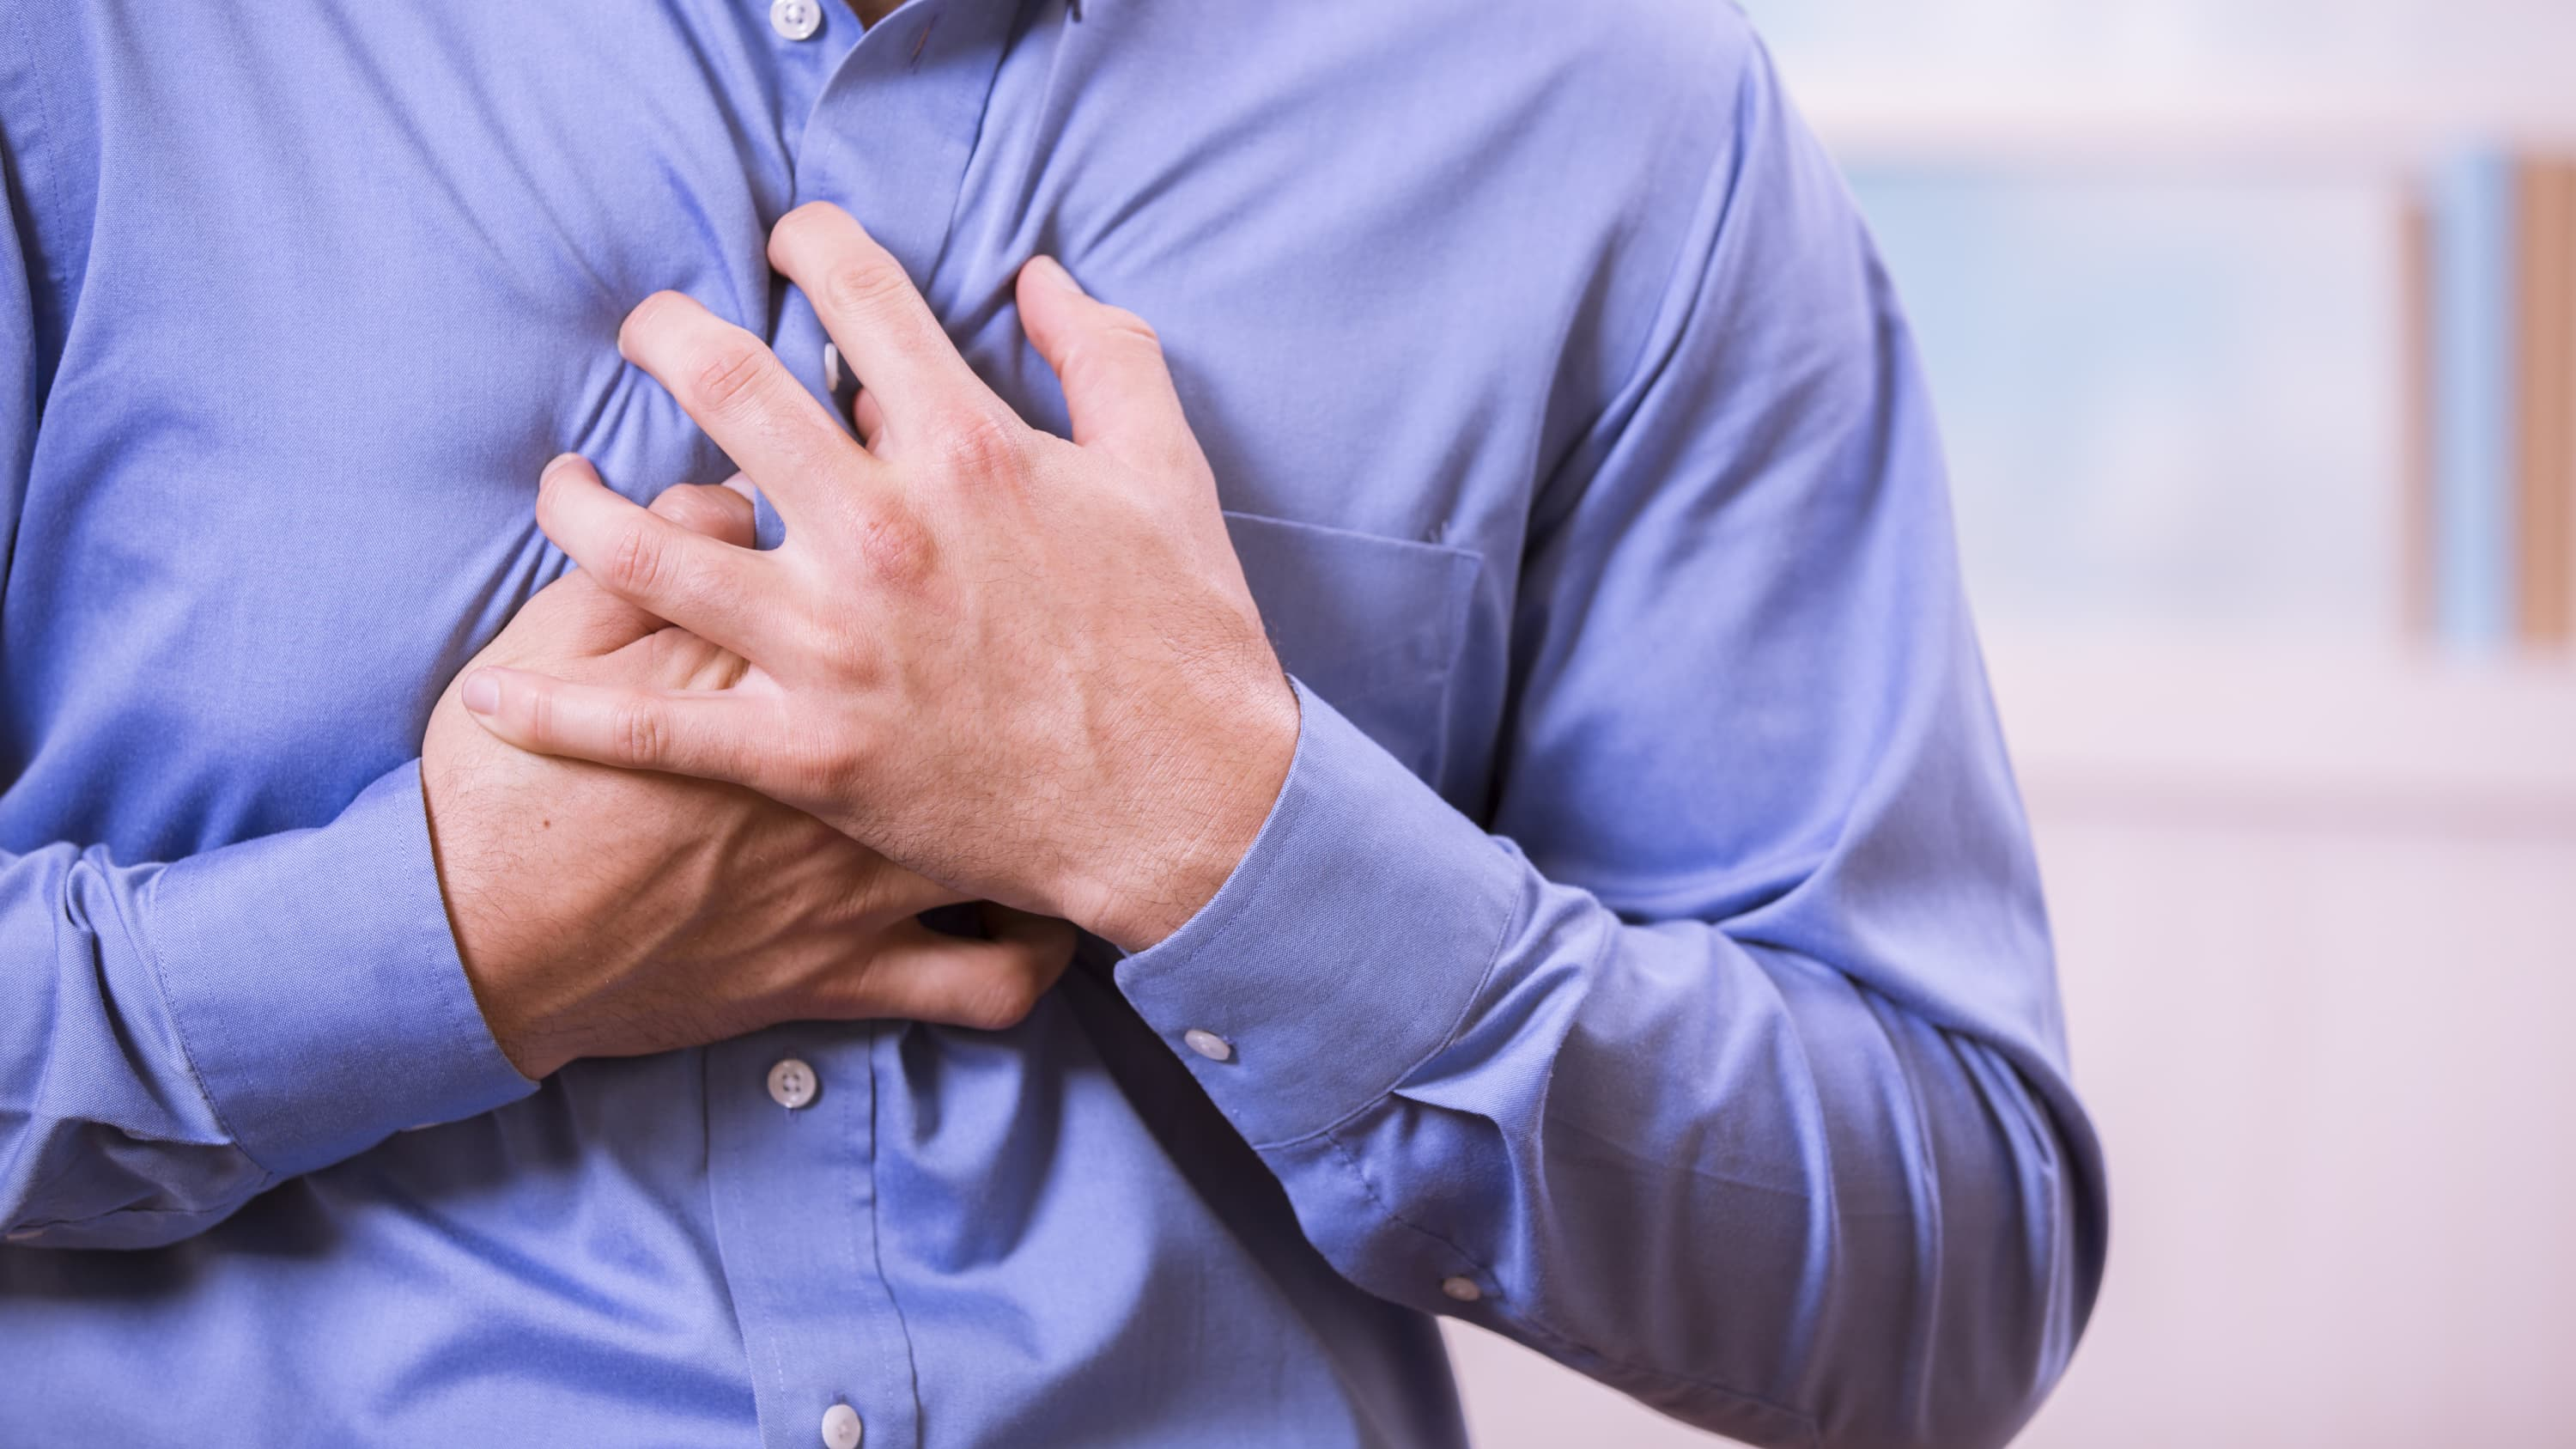 A man in a blue shirt who may have a pulmonary embolism clutches his chest.